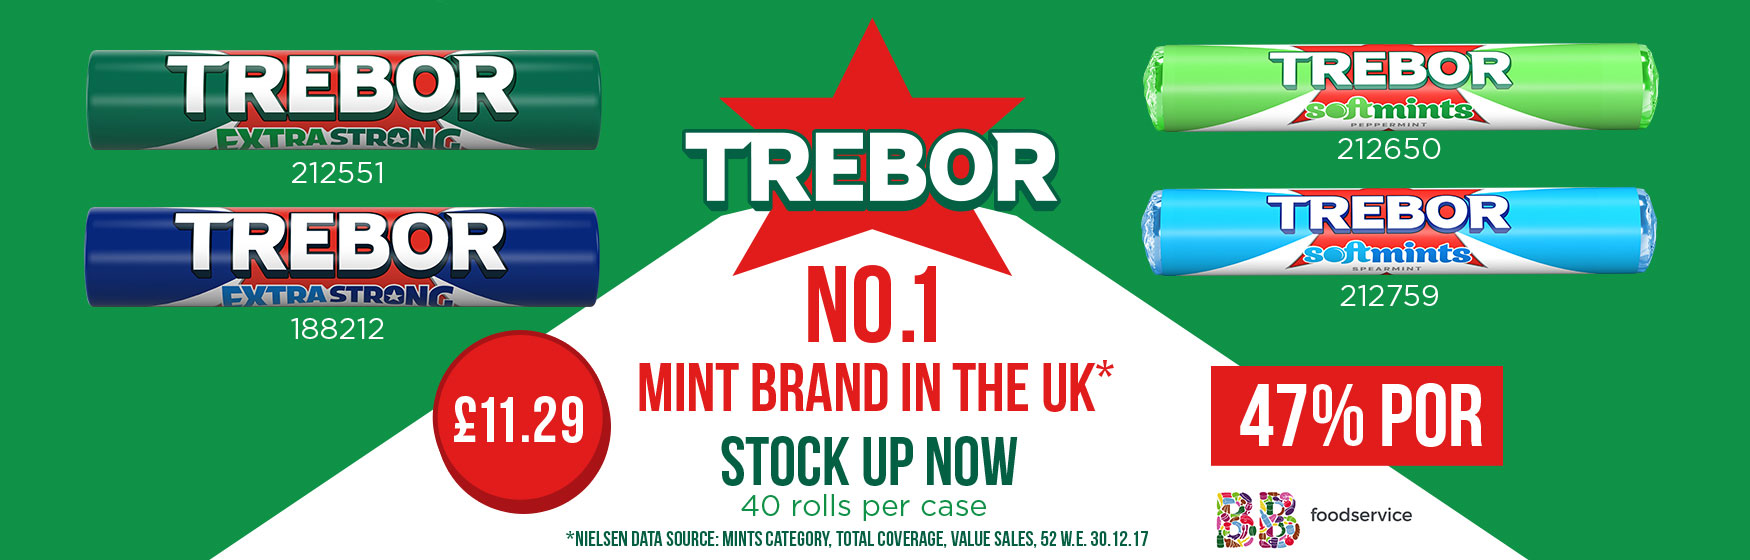 Trebor – No. 1 mint brand in the UK